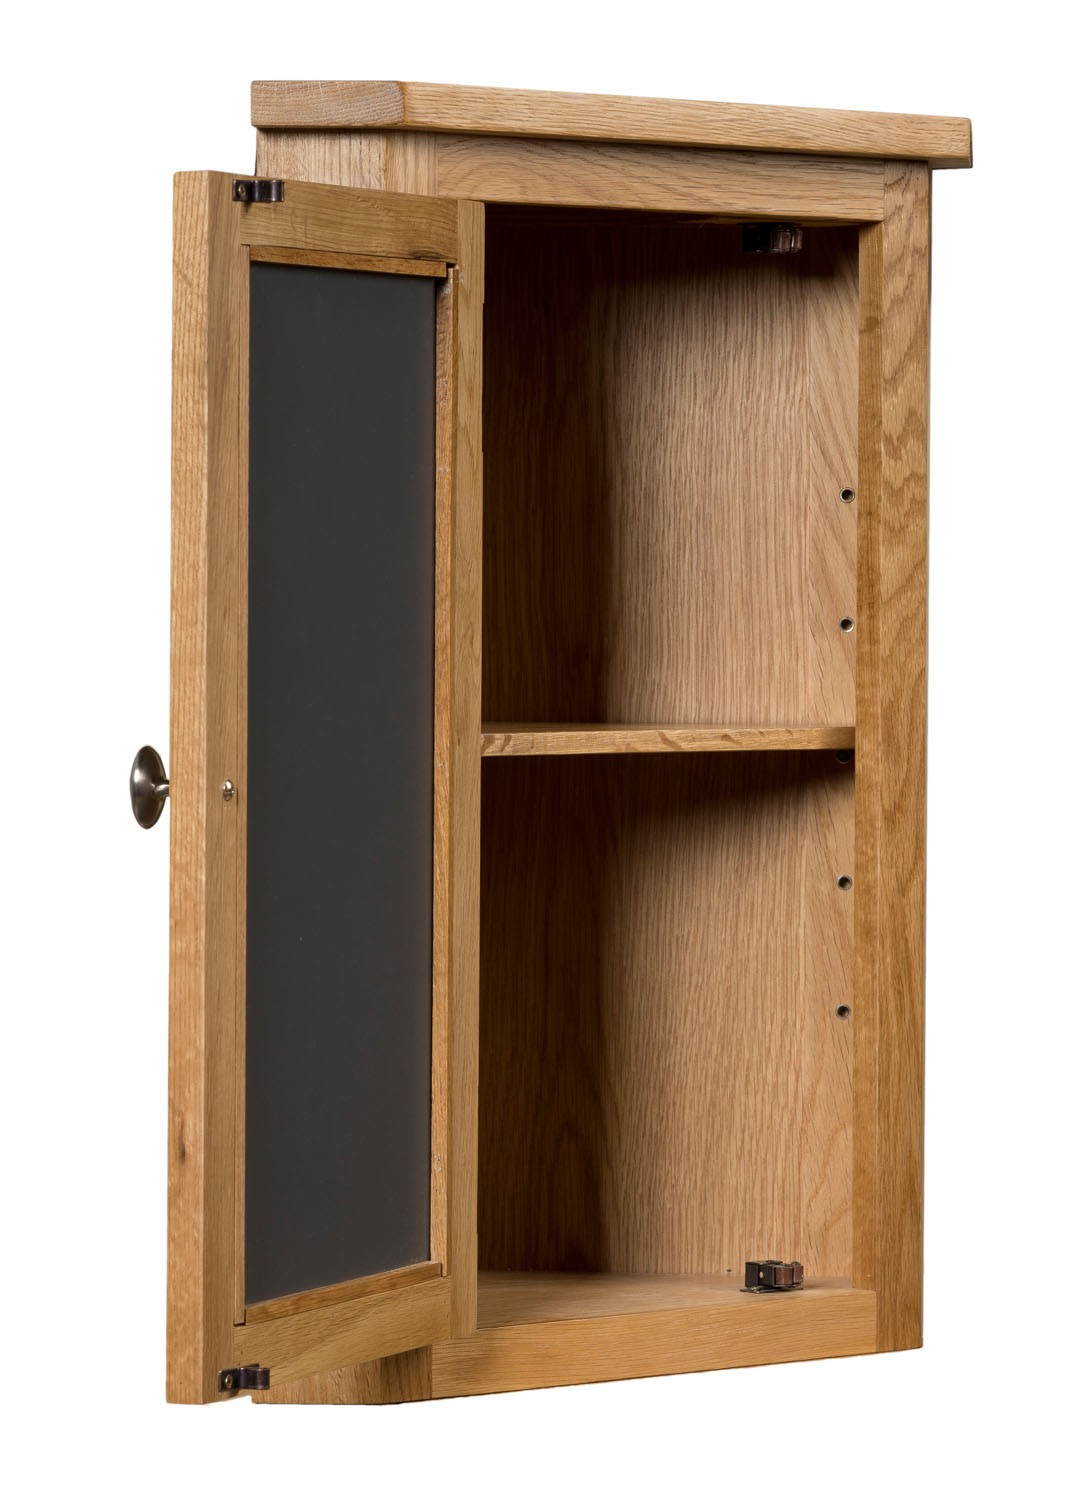 Waverly solid oak small bathroom corner cabinet cupboard for Bathroom armoire cabinets